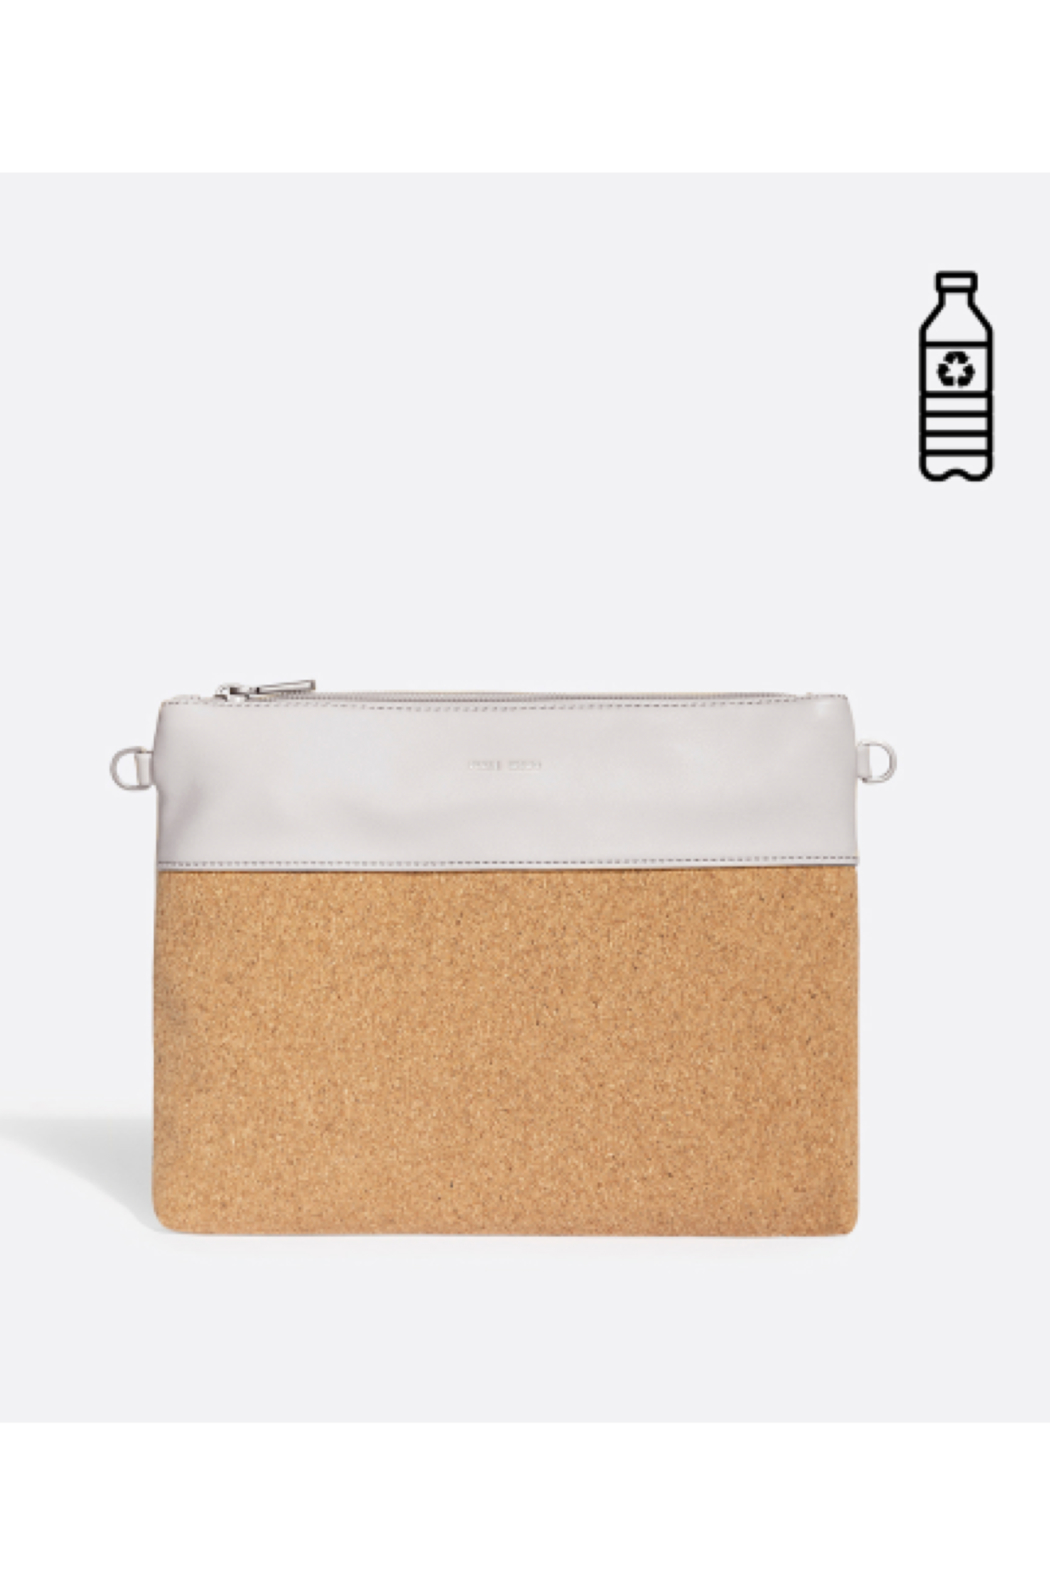 Pixie Mood Nicole Pouch Large – Cloud / Cork - Side Cropped Image